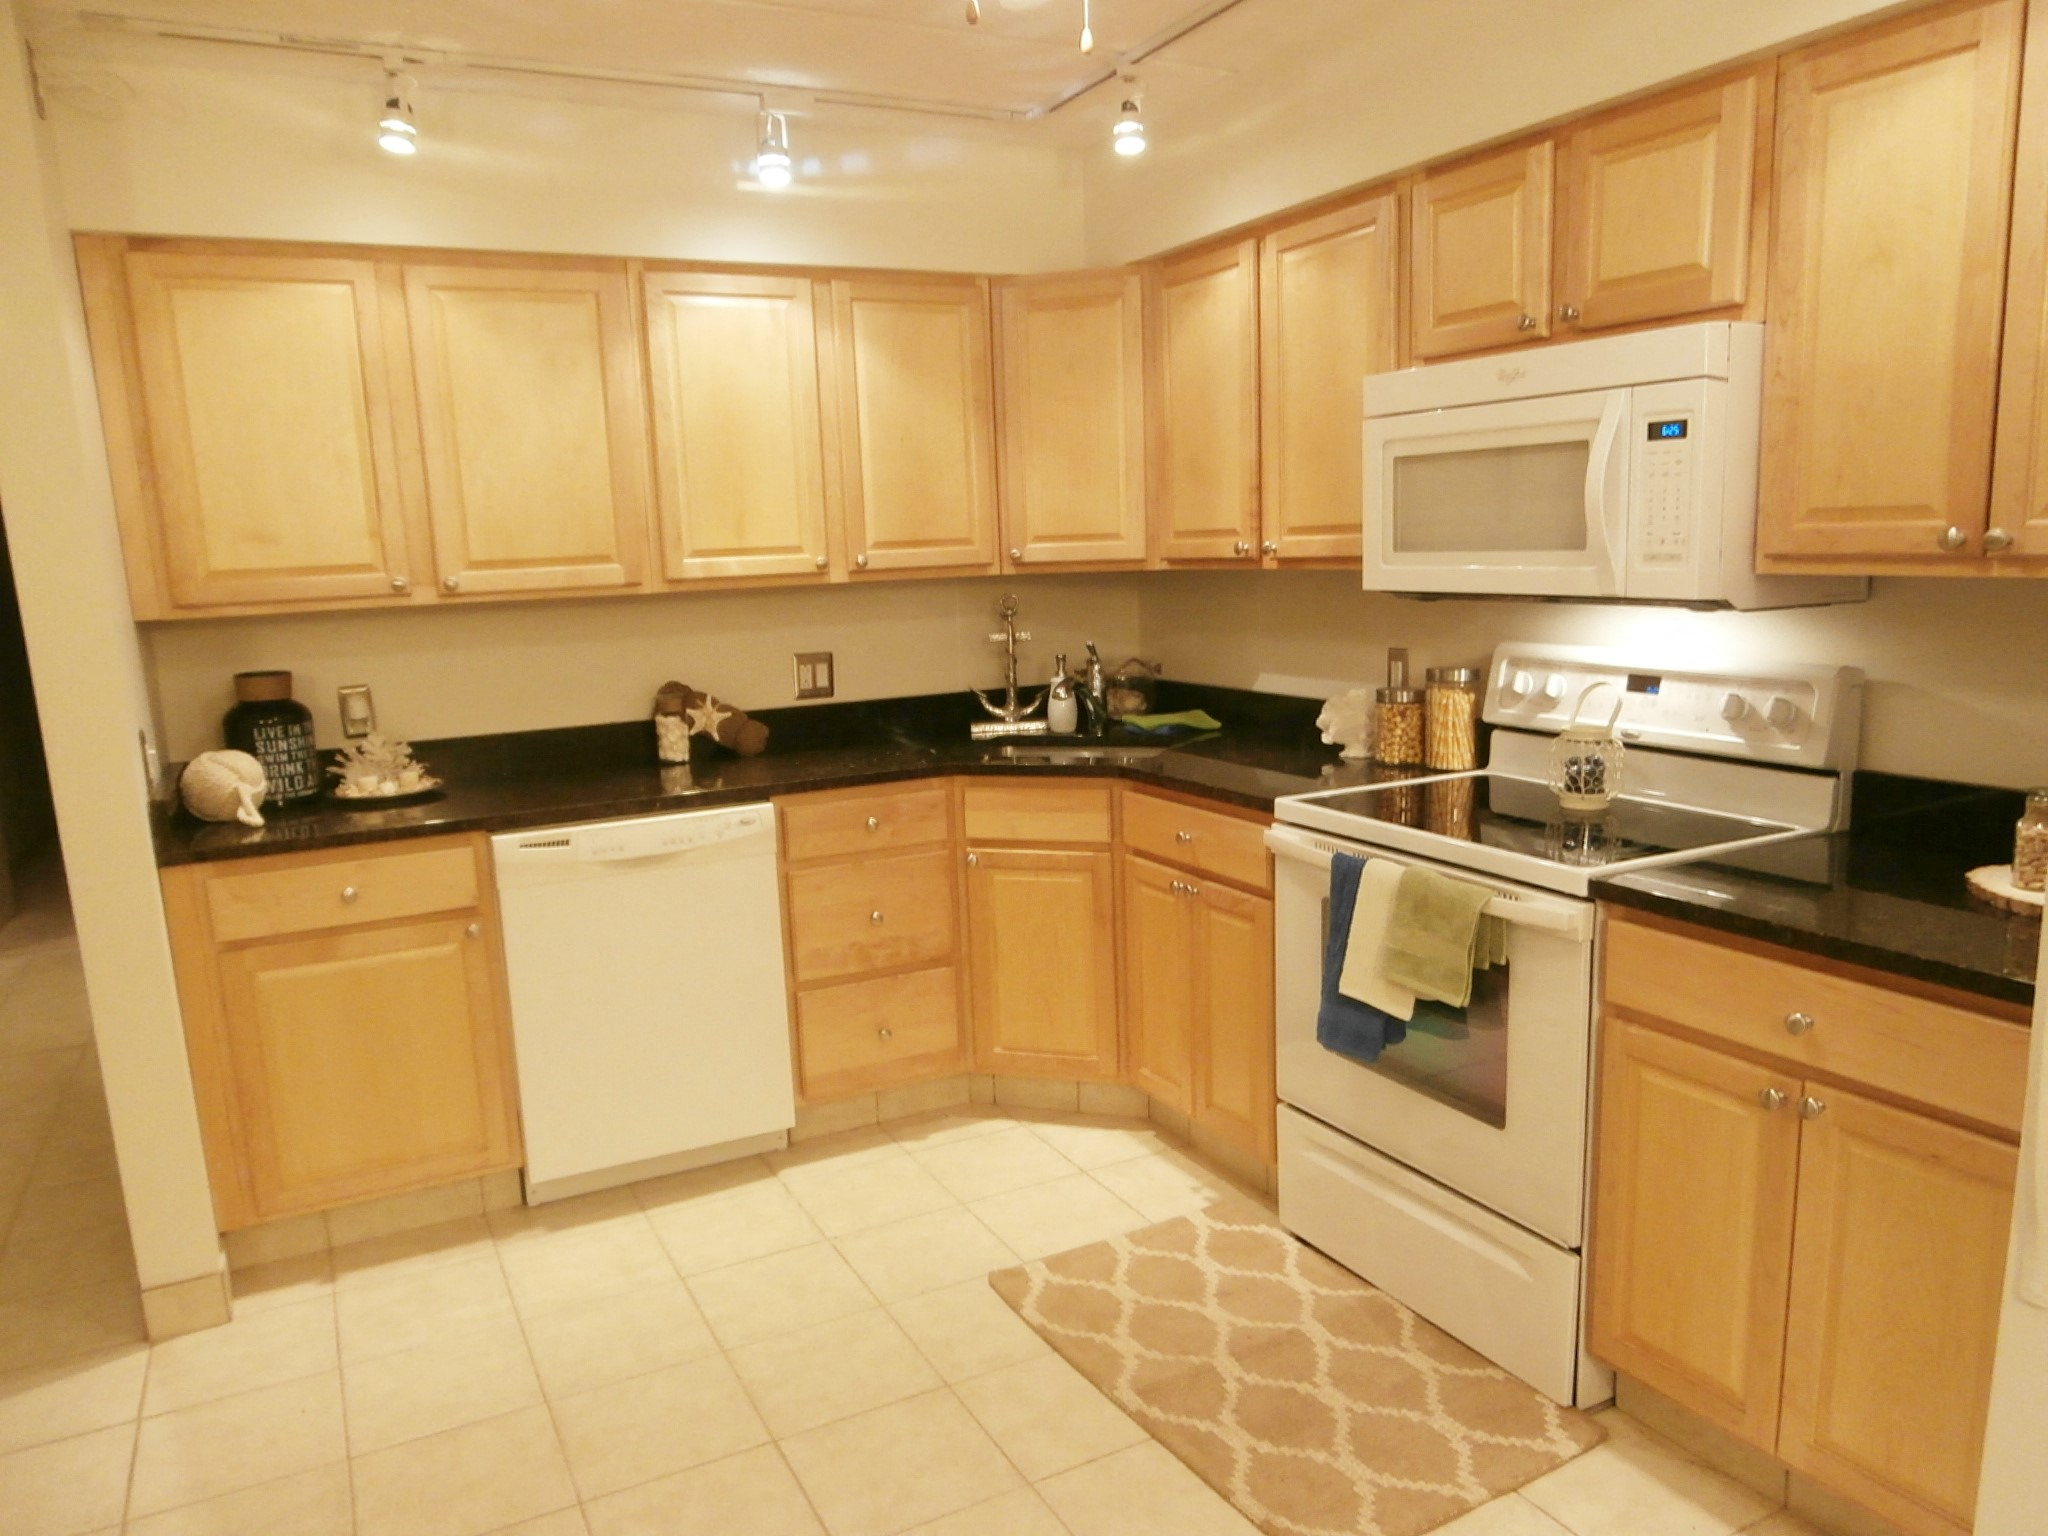 Kitchen cabinets and appliances at Summit Terrace